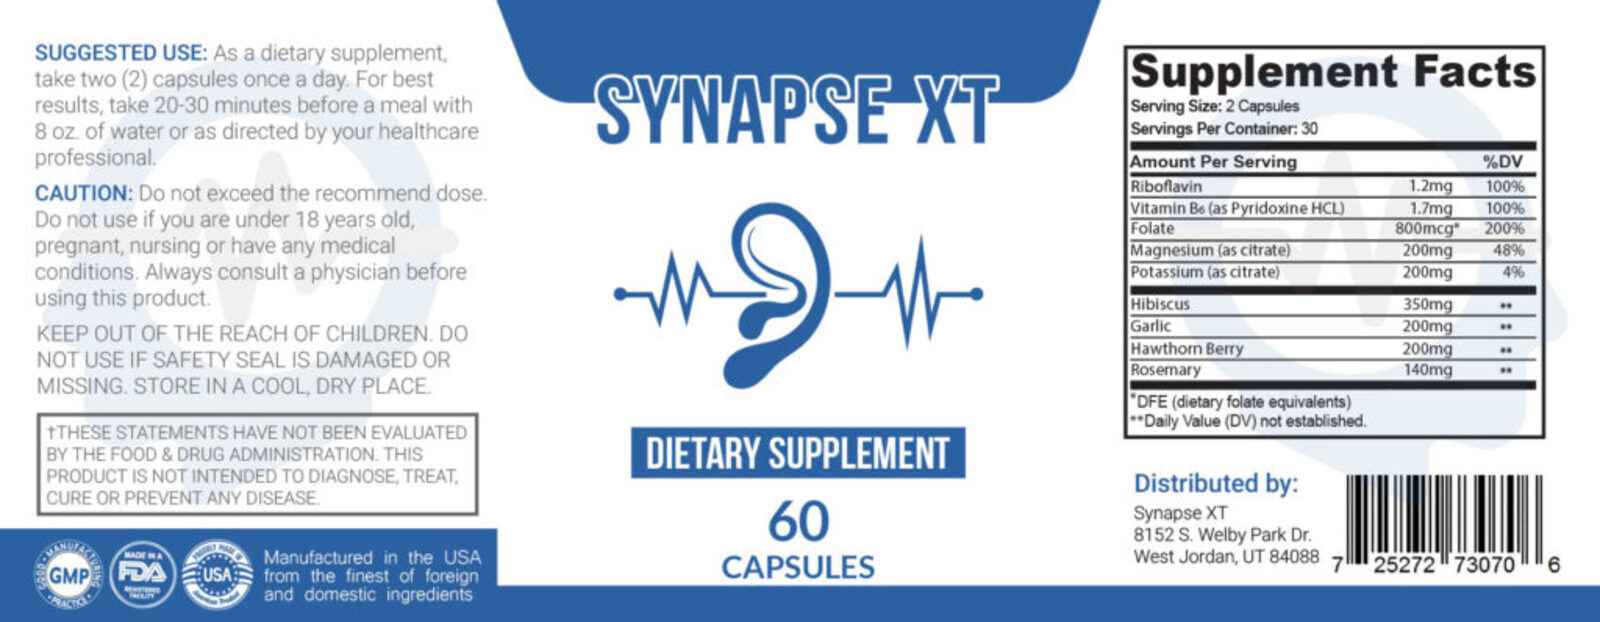 Synapse XT Ingredient